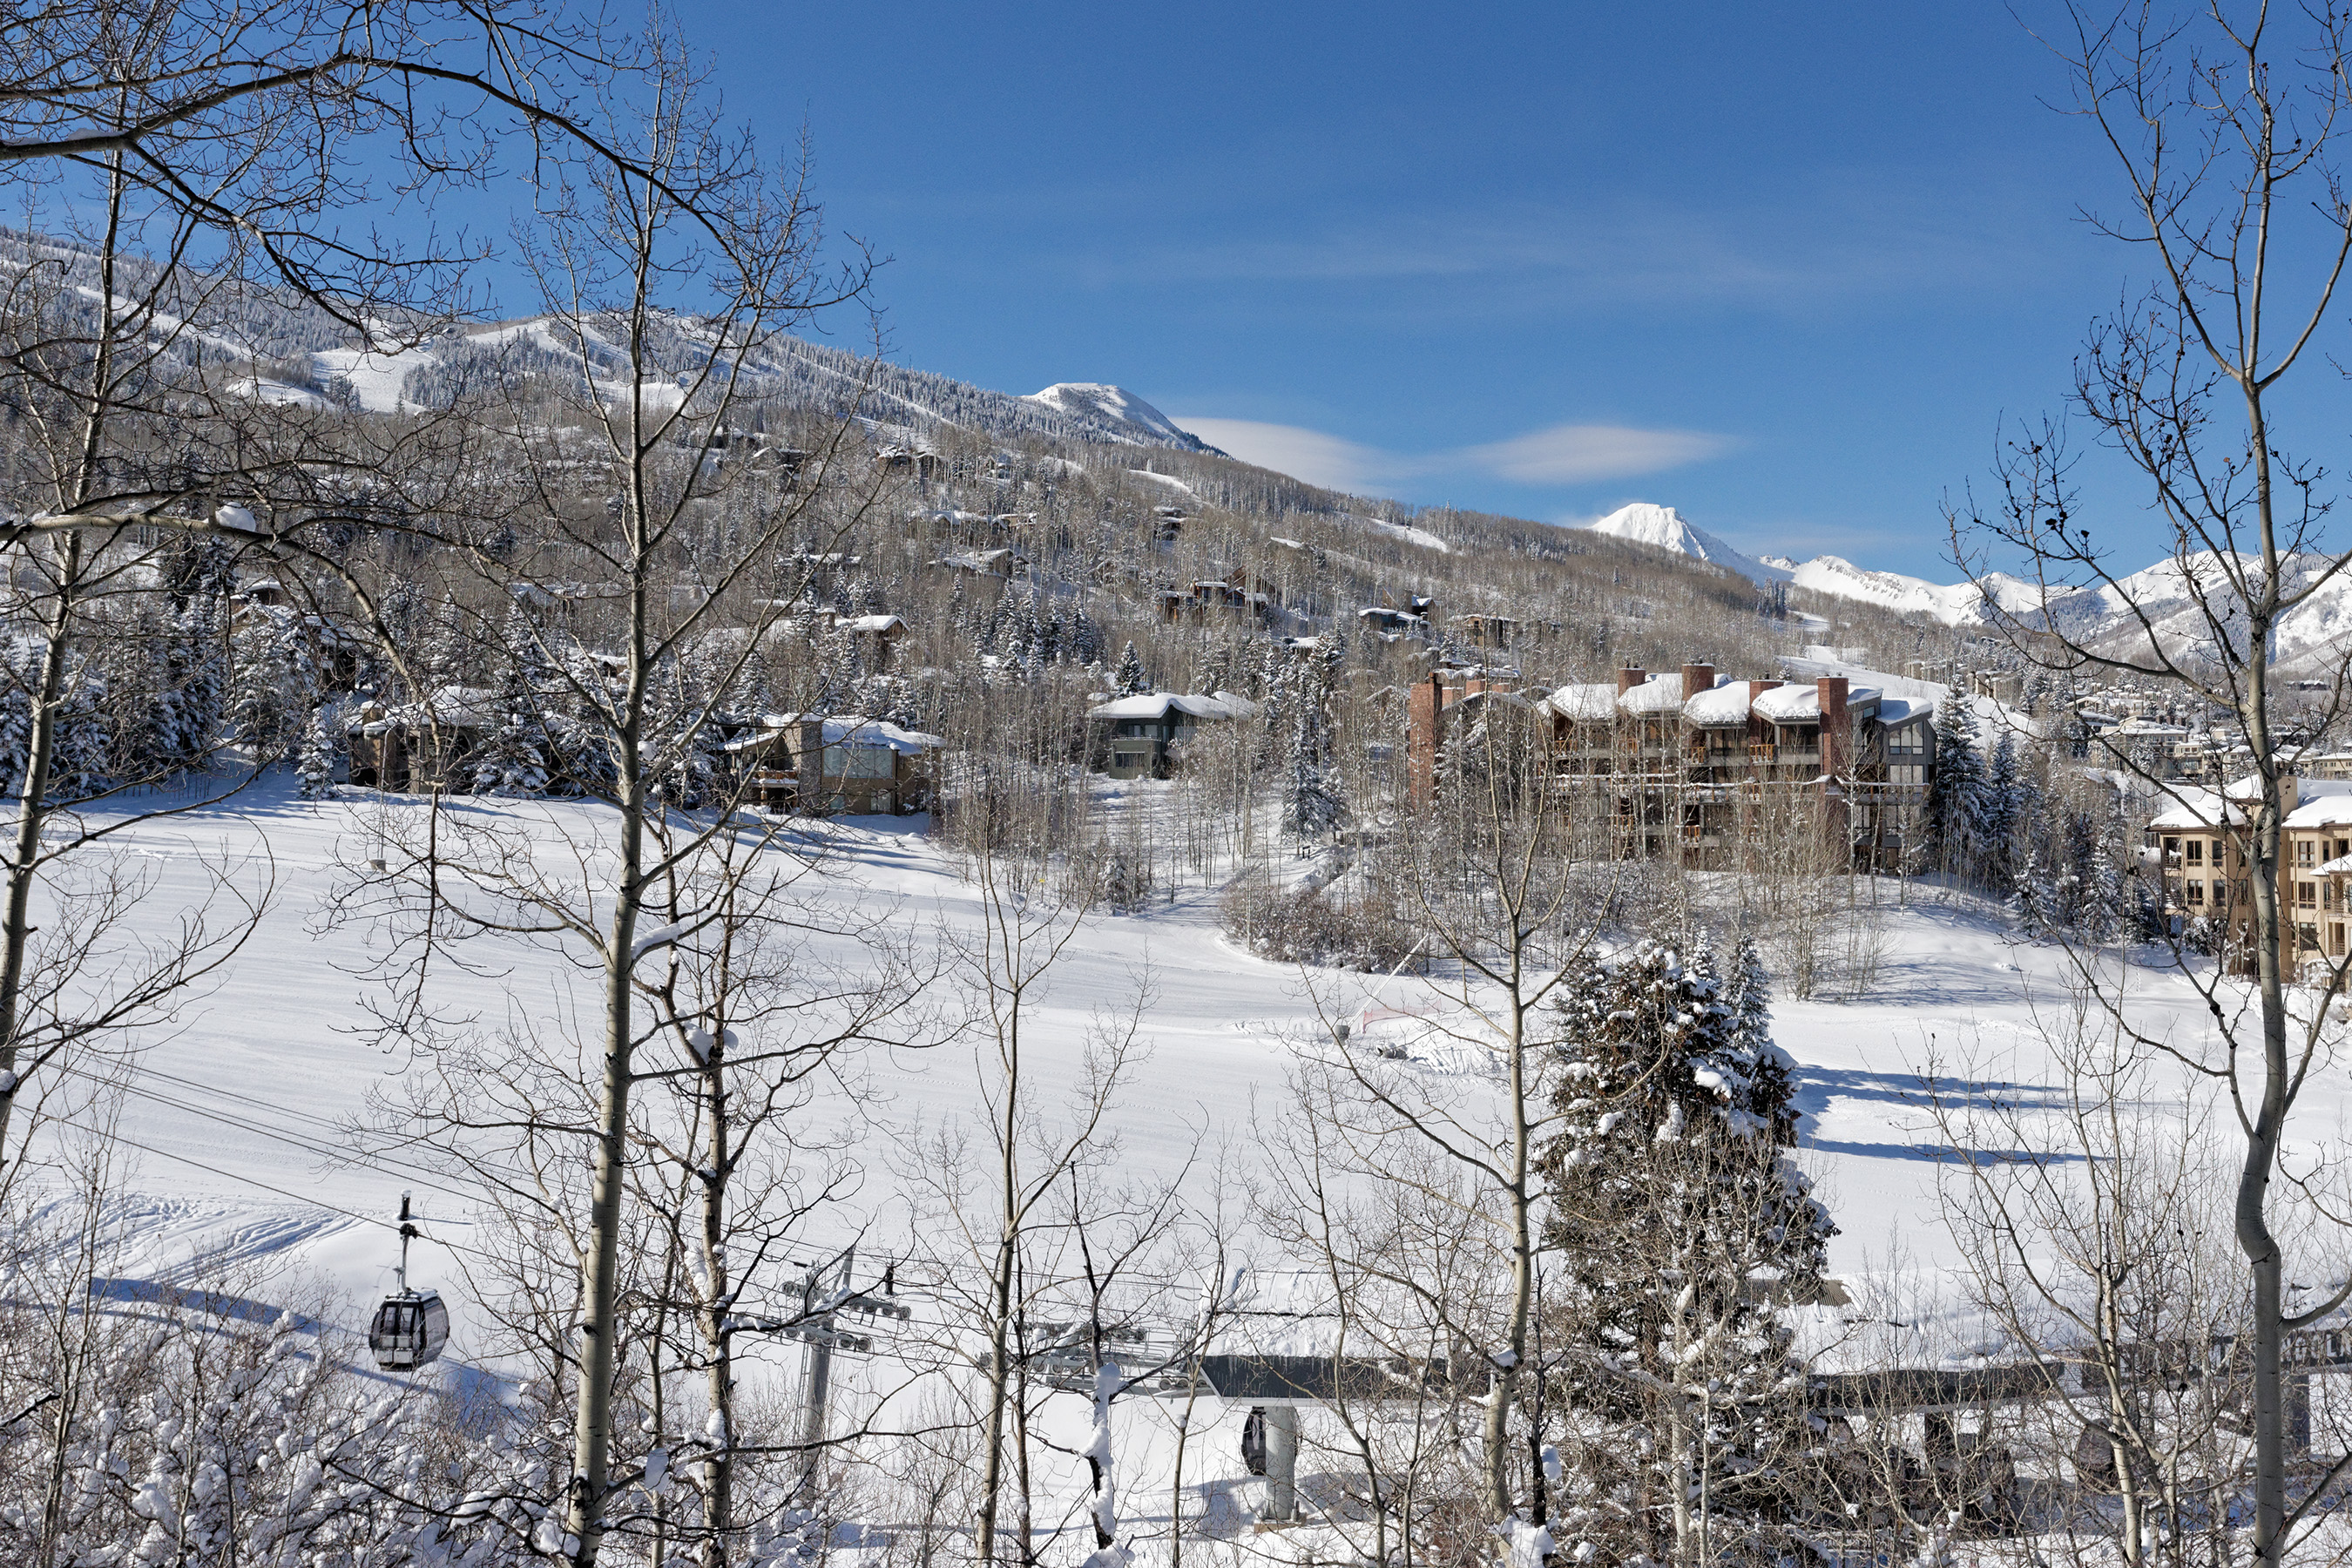 172 Deer Ridge Lane Snowmass Village Photo 1